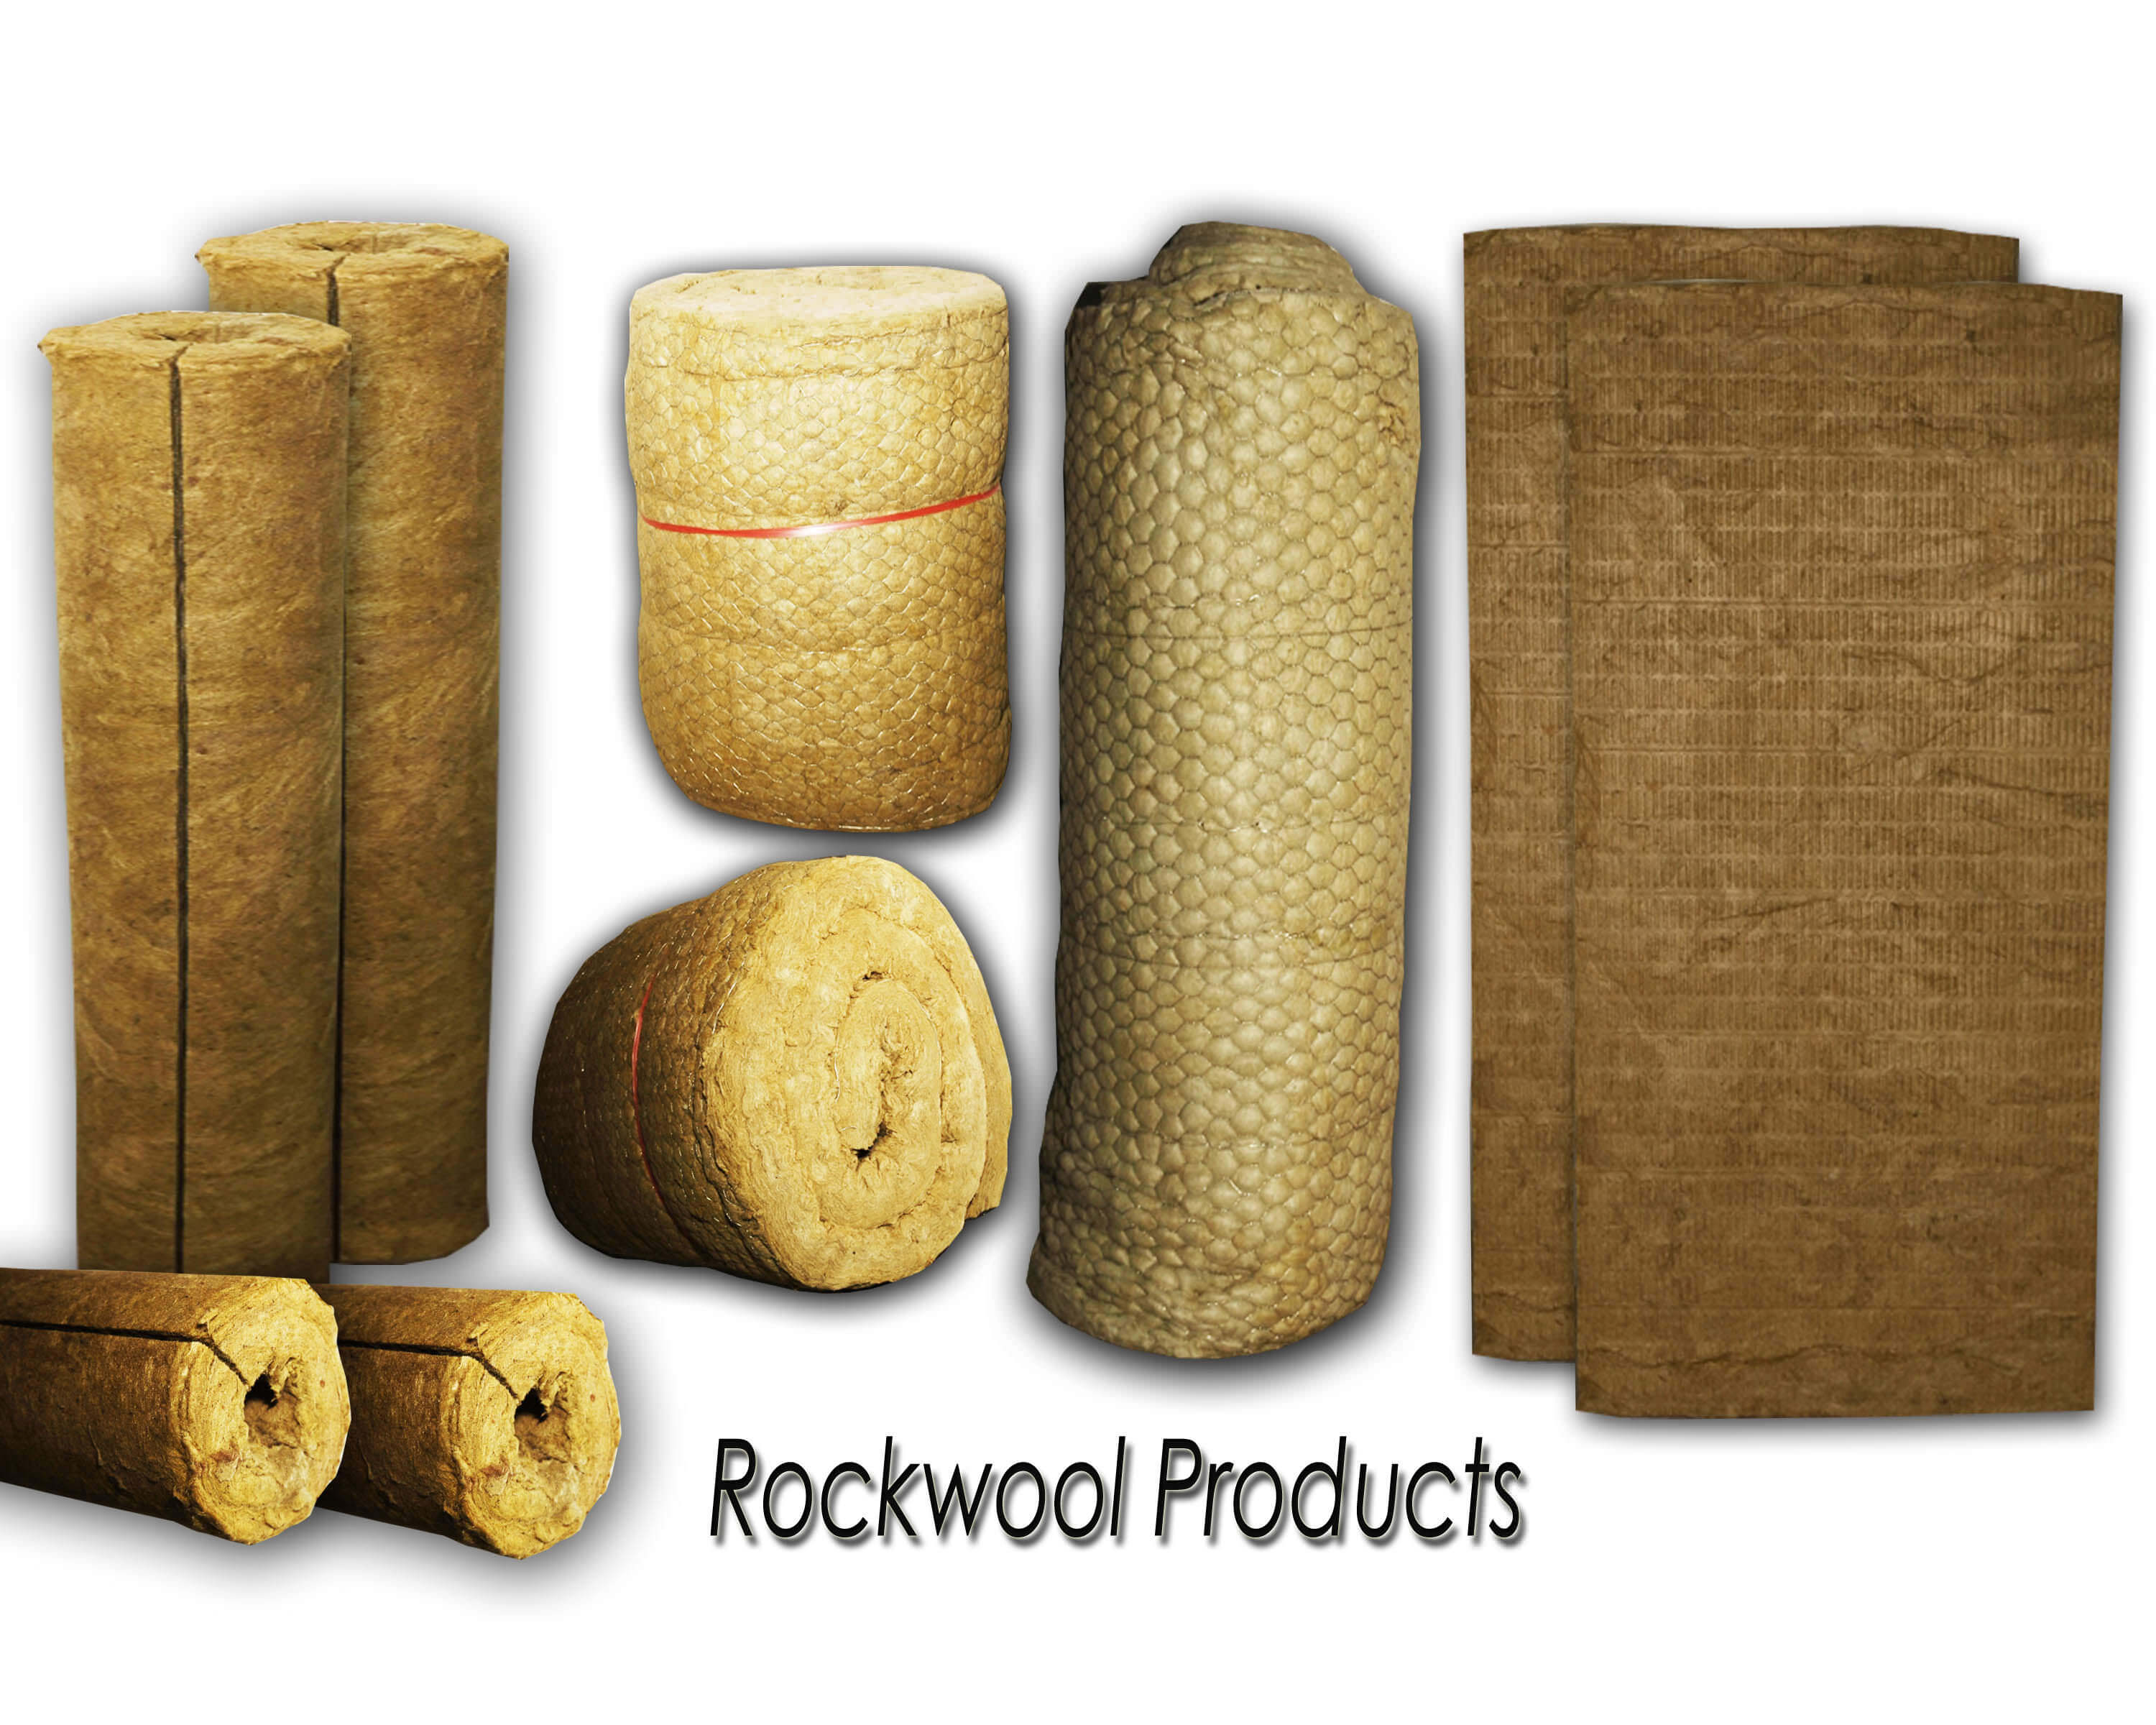 Rockwool or Mineral Wool